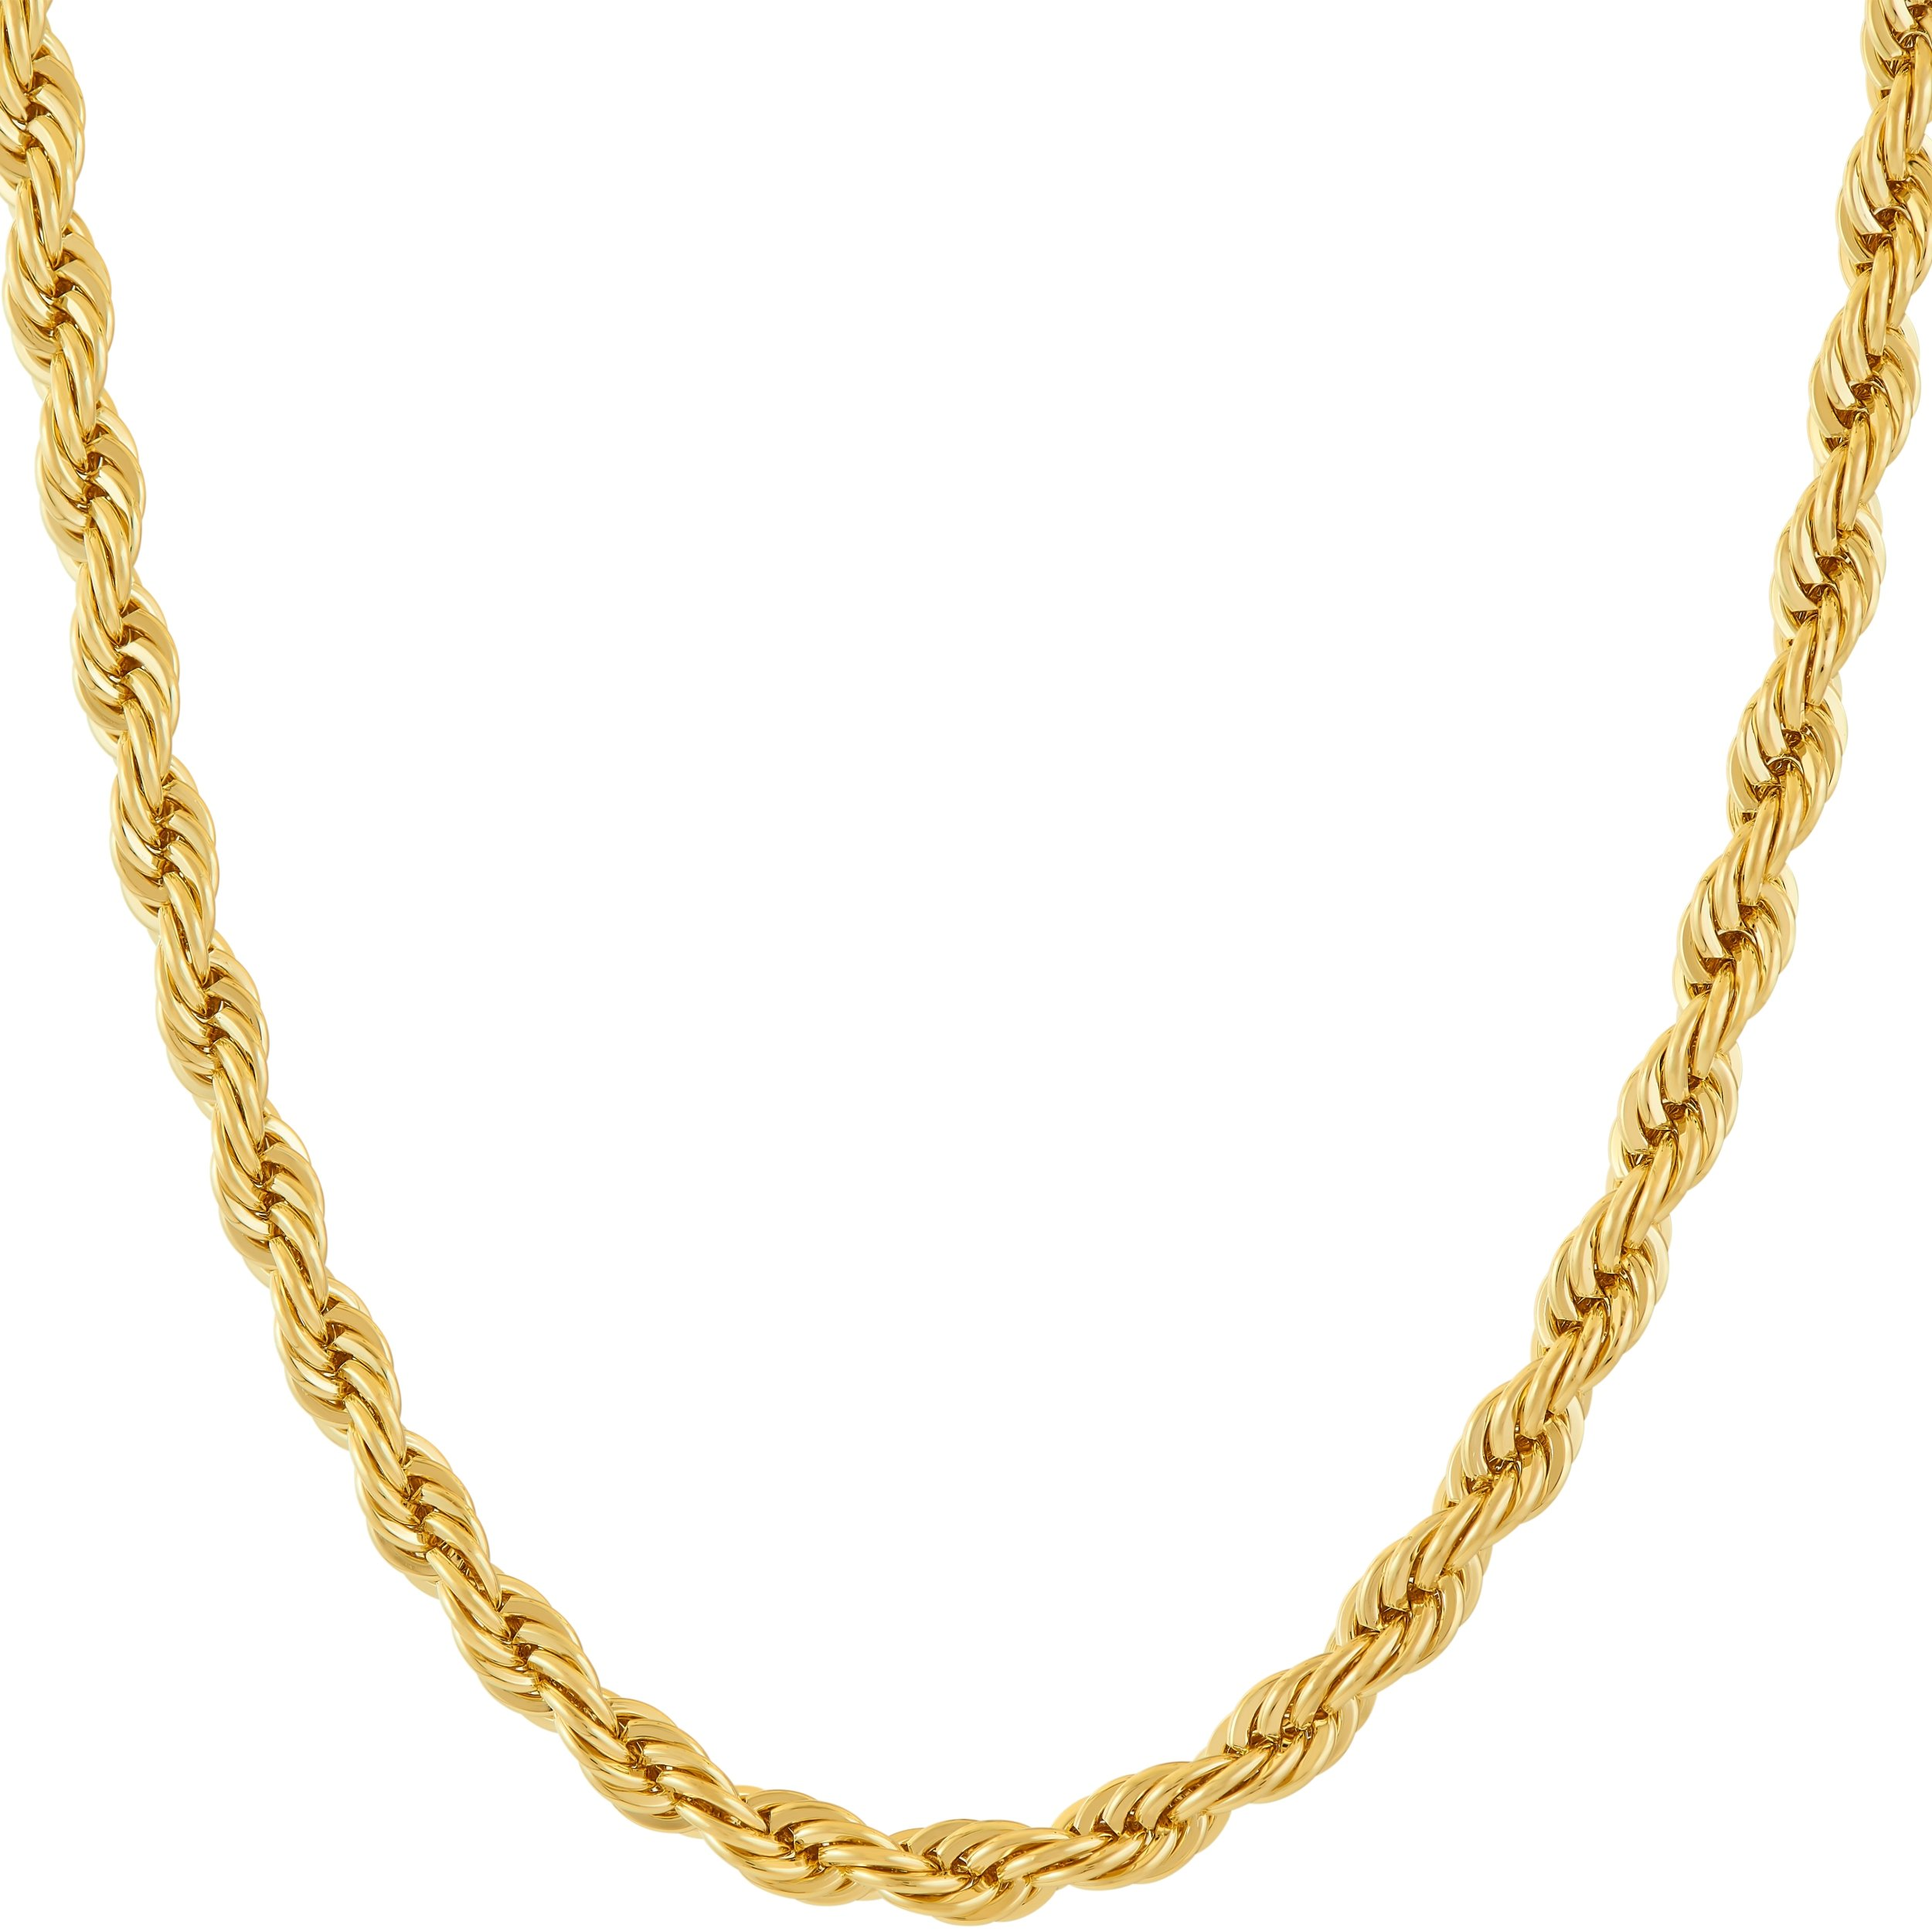 Lifetime Jewelry 5MM Rope Chain, 24K Gold with Inlaid Bronze Premium Fashion Jewelry Pendant Necklace Made to Wear Alone or with Pendants, Guaranteed for Life, 22 Inches by Lifetime Jewelry